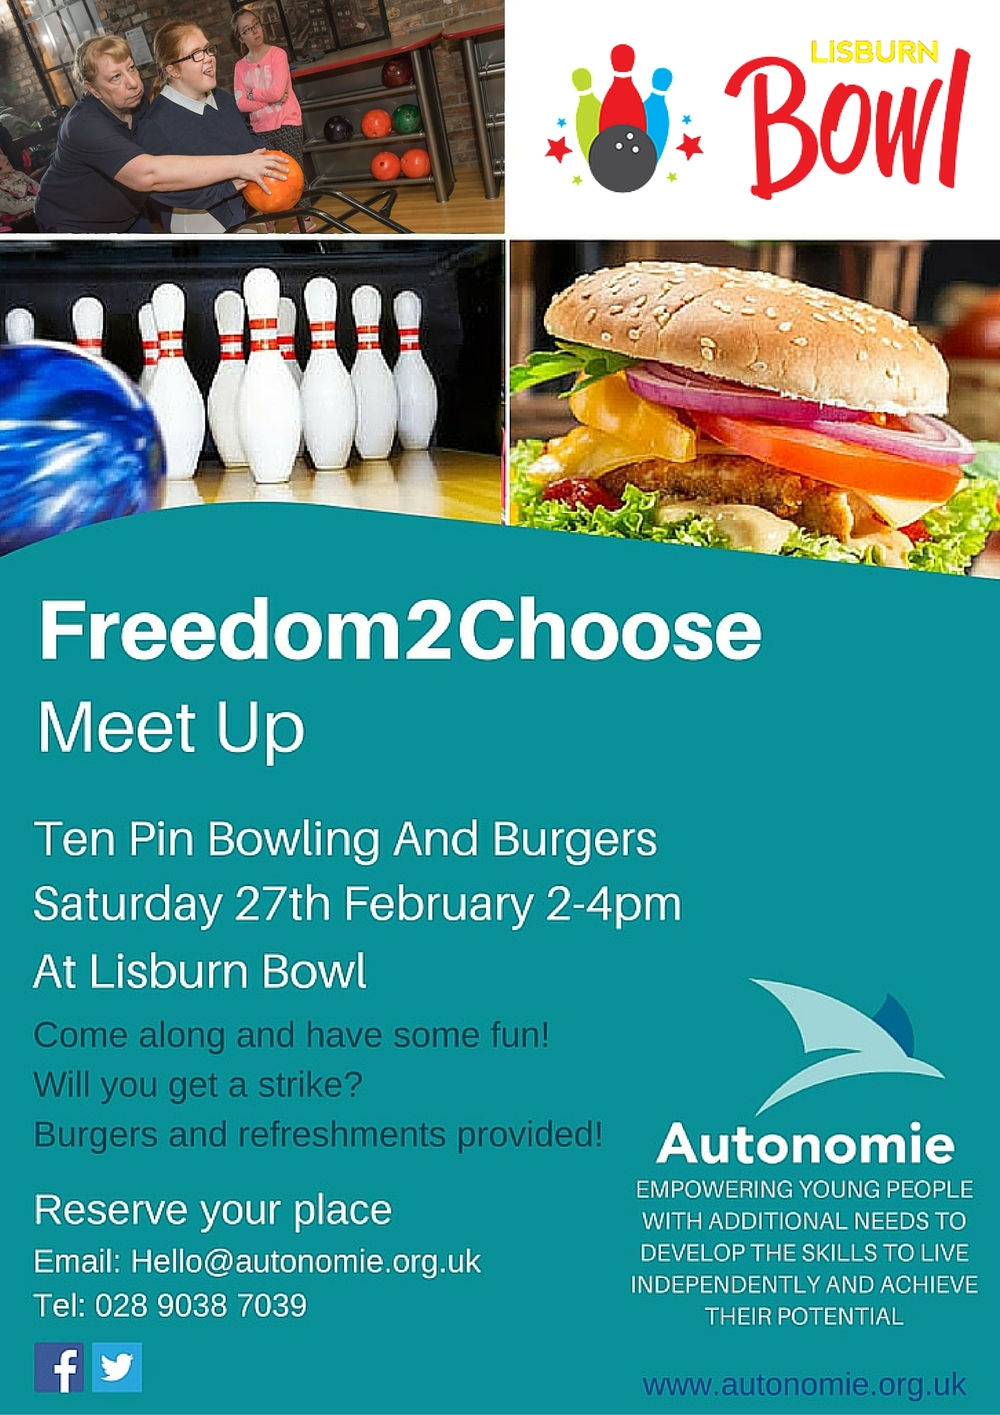 Freedom2ChooseBowls27Feb.jpg